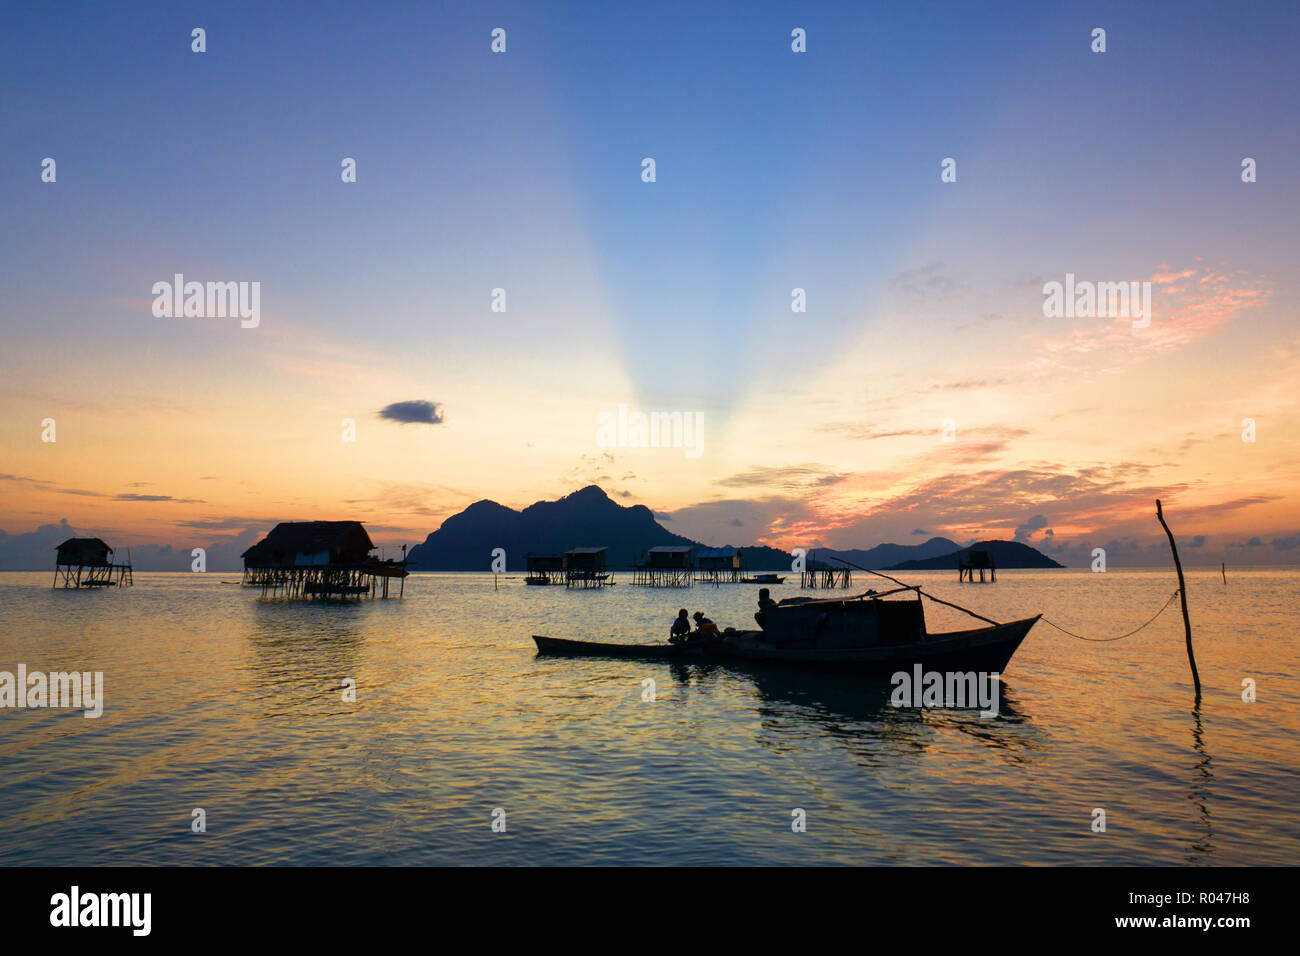 Beautiful sunrise with boat and house built stilt on water at Maiga Island Semporna Sabah - Stock Image